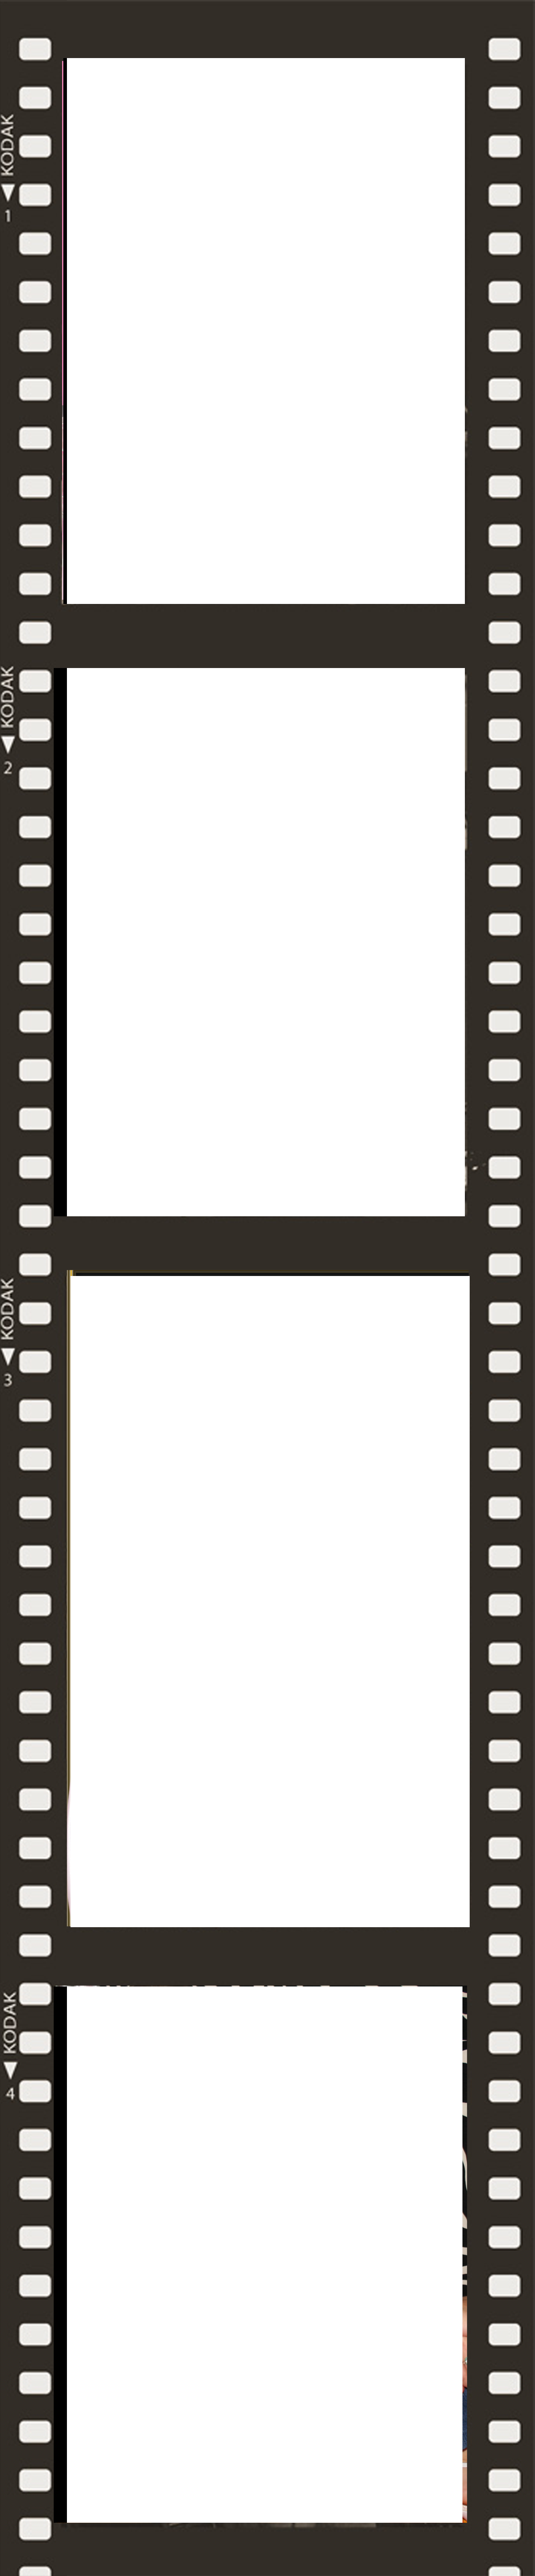 Filmstrip Movie Transparent Image 21901